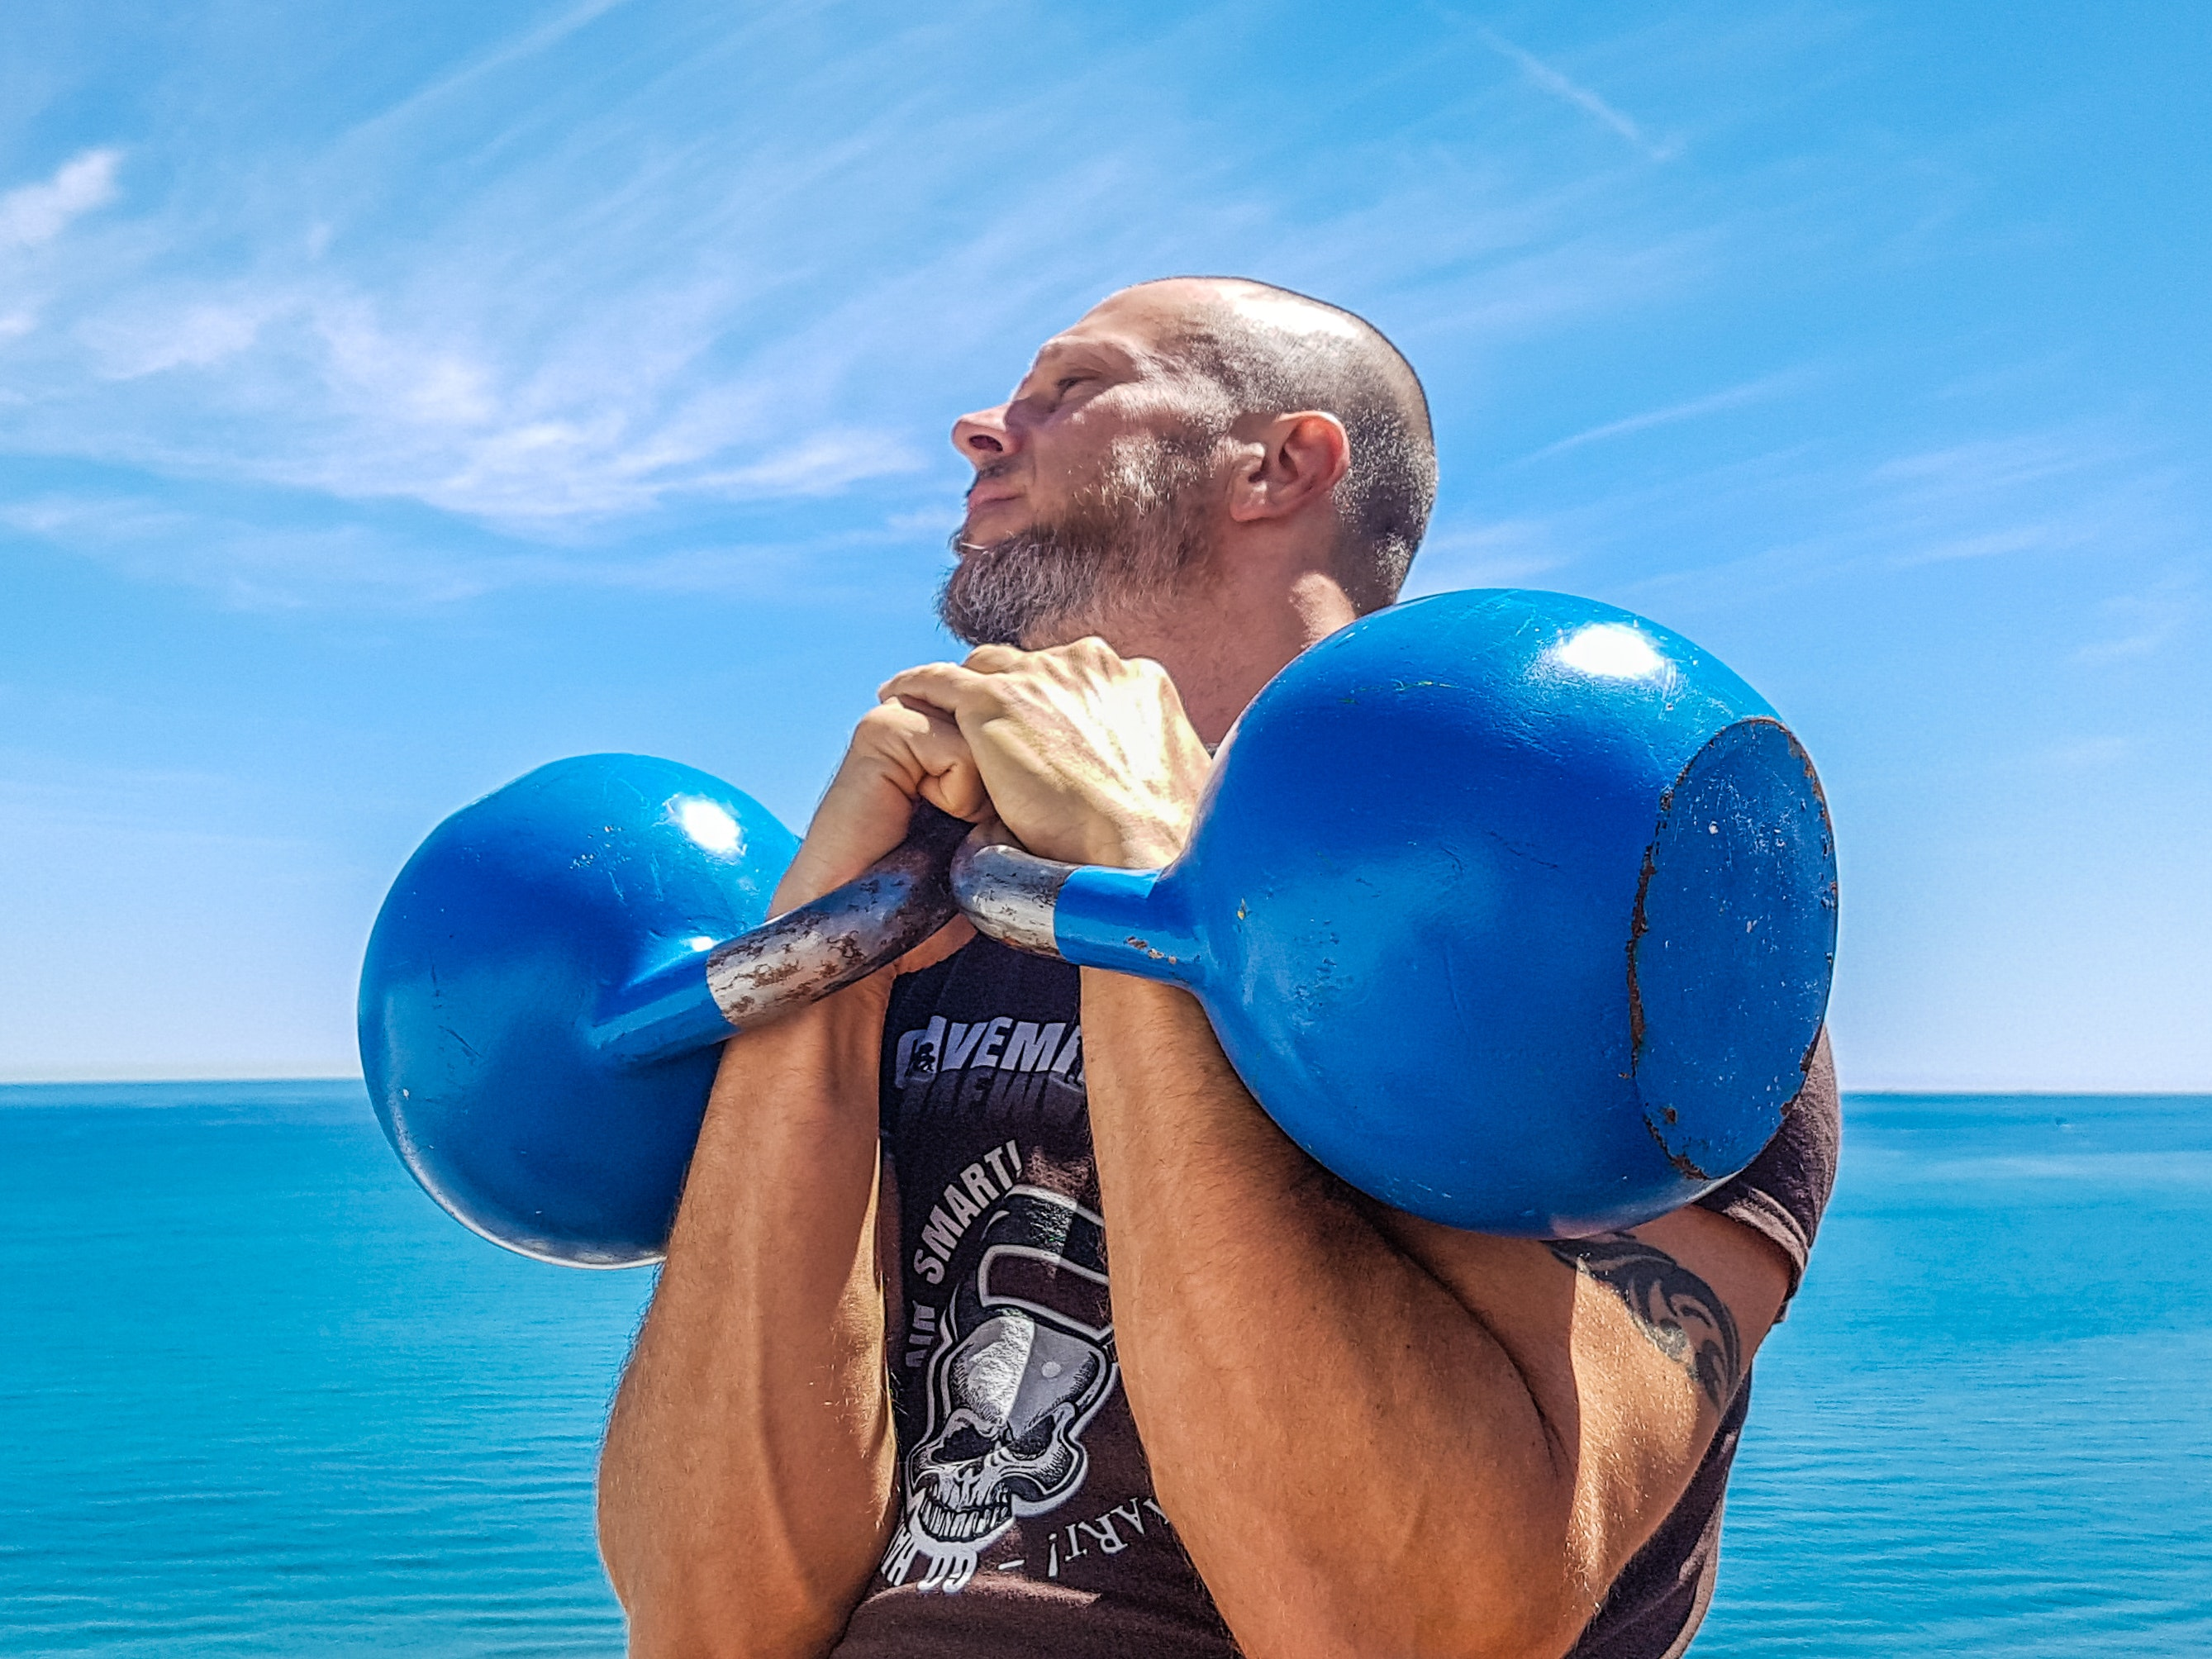 Man Lifting Pair of Blue Kettlebells, Active, Muscles, Strong, Sky, HQ Photo